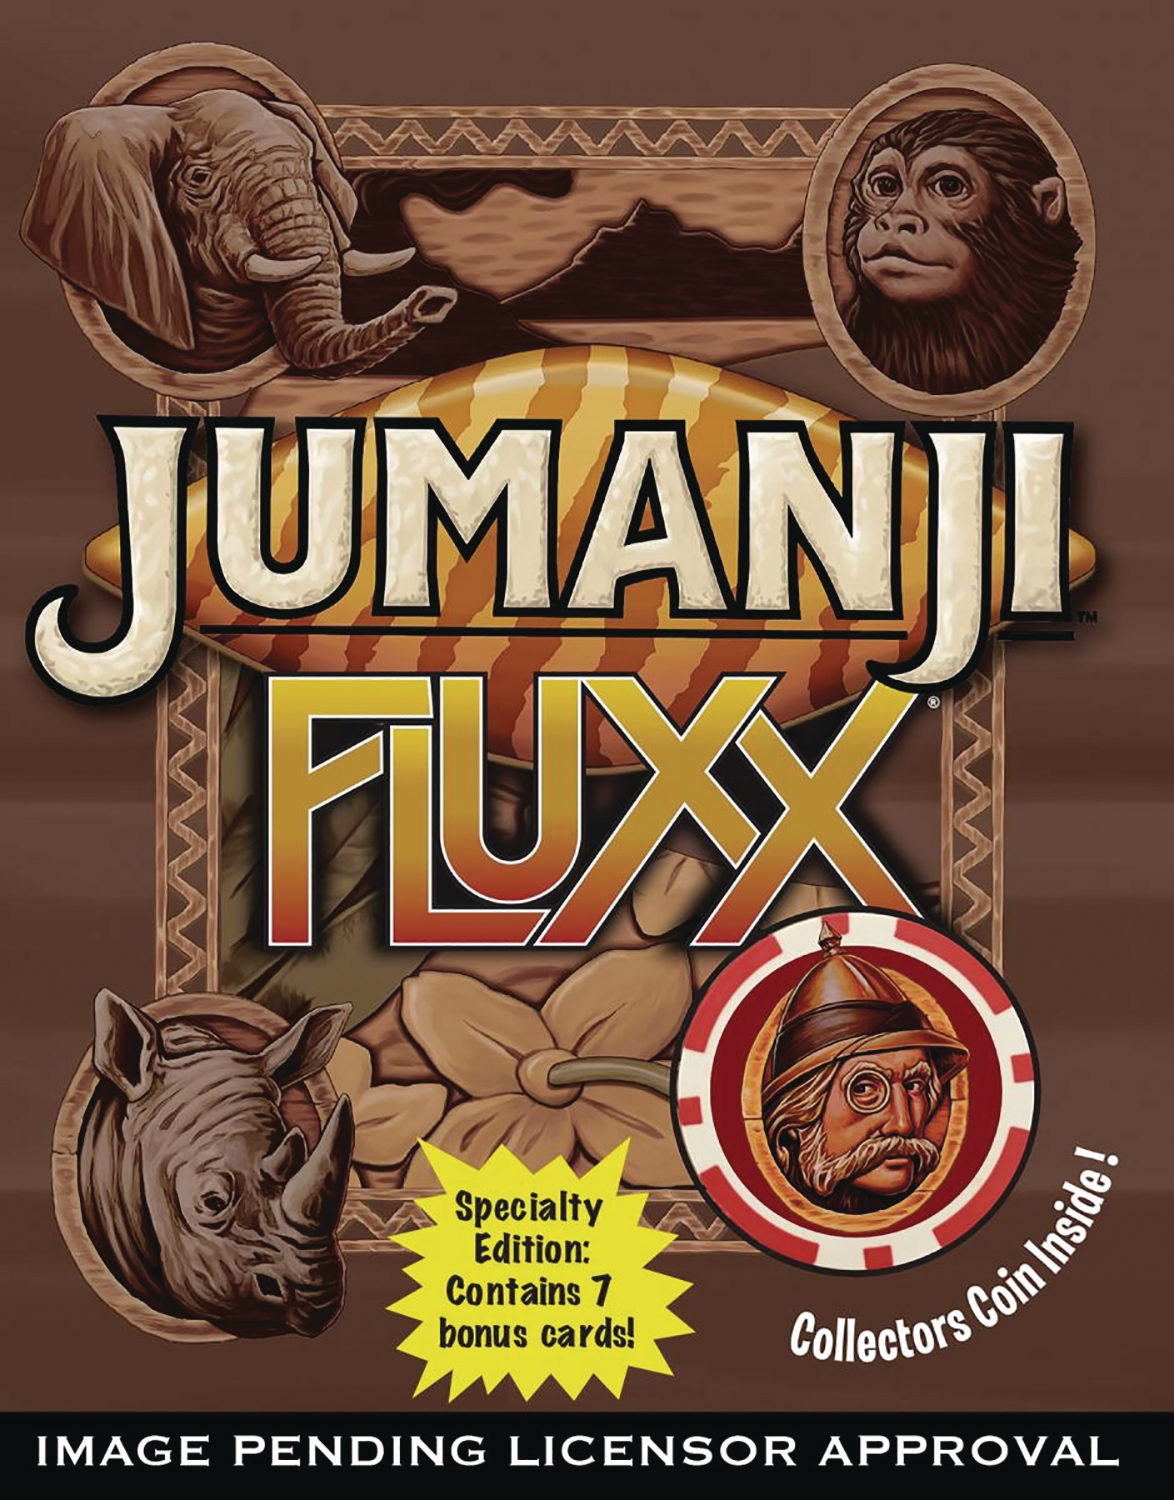 JUMANJI FLUXX SP ED CARD GAME